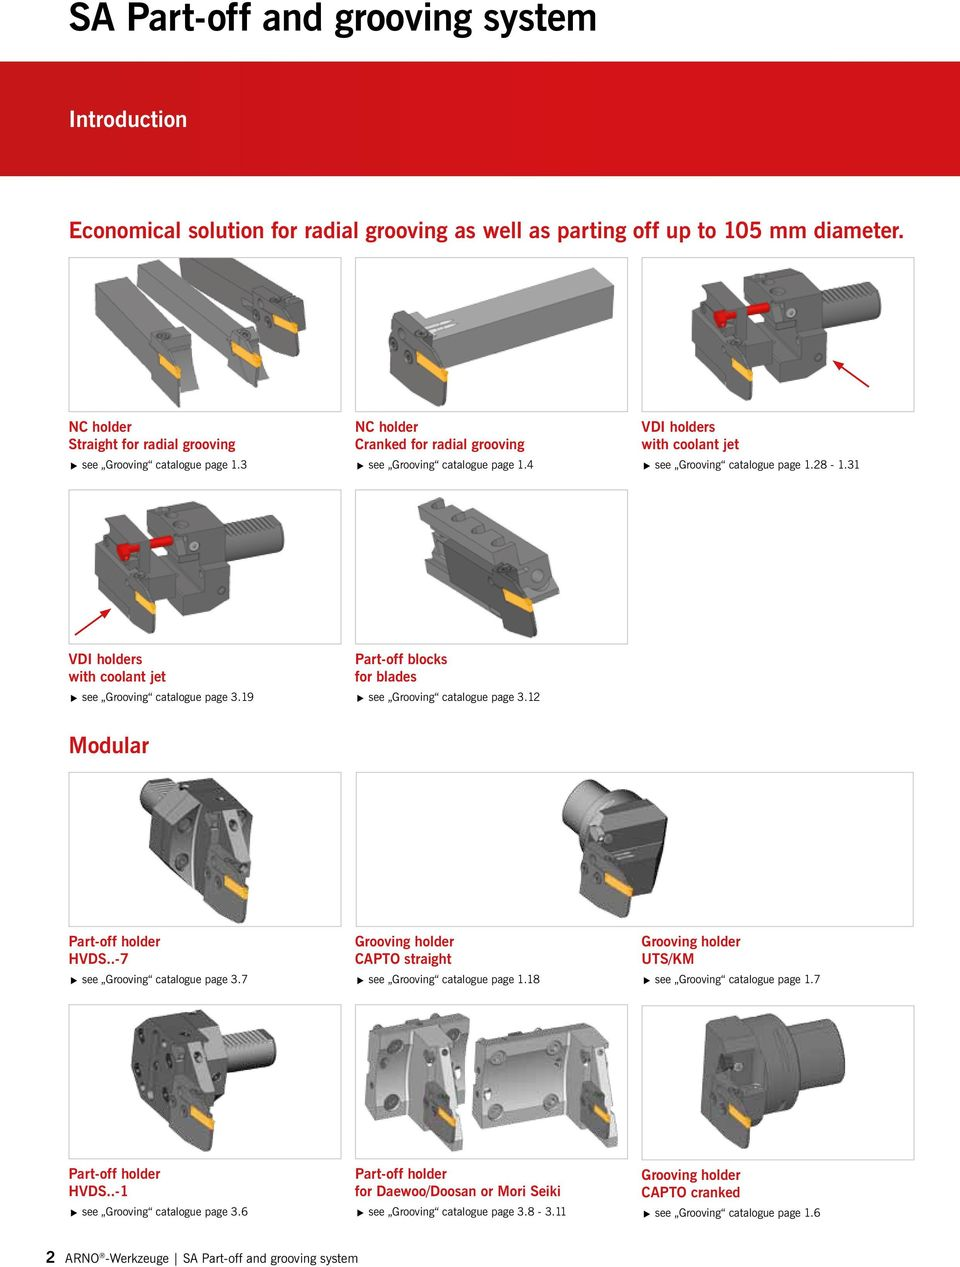 19 Part-off blocks for blades see Grooving catalogue page 3.12 Modular Part-off holder HVDS..-7 see Grooving catalogue page 3.7 Grooving holder CAPTO straight see Grooving catalogue page 1.